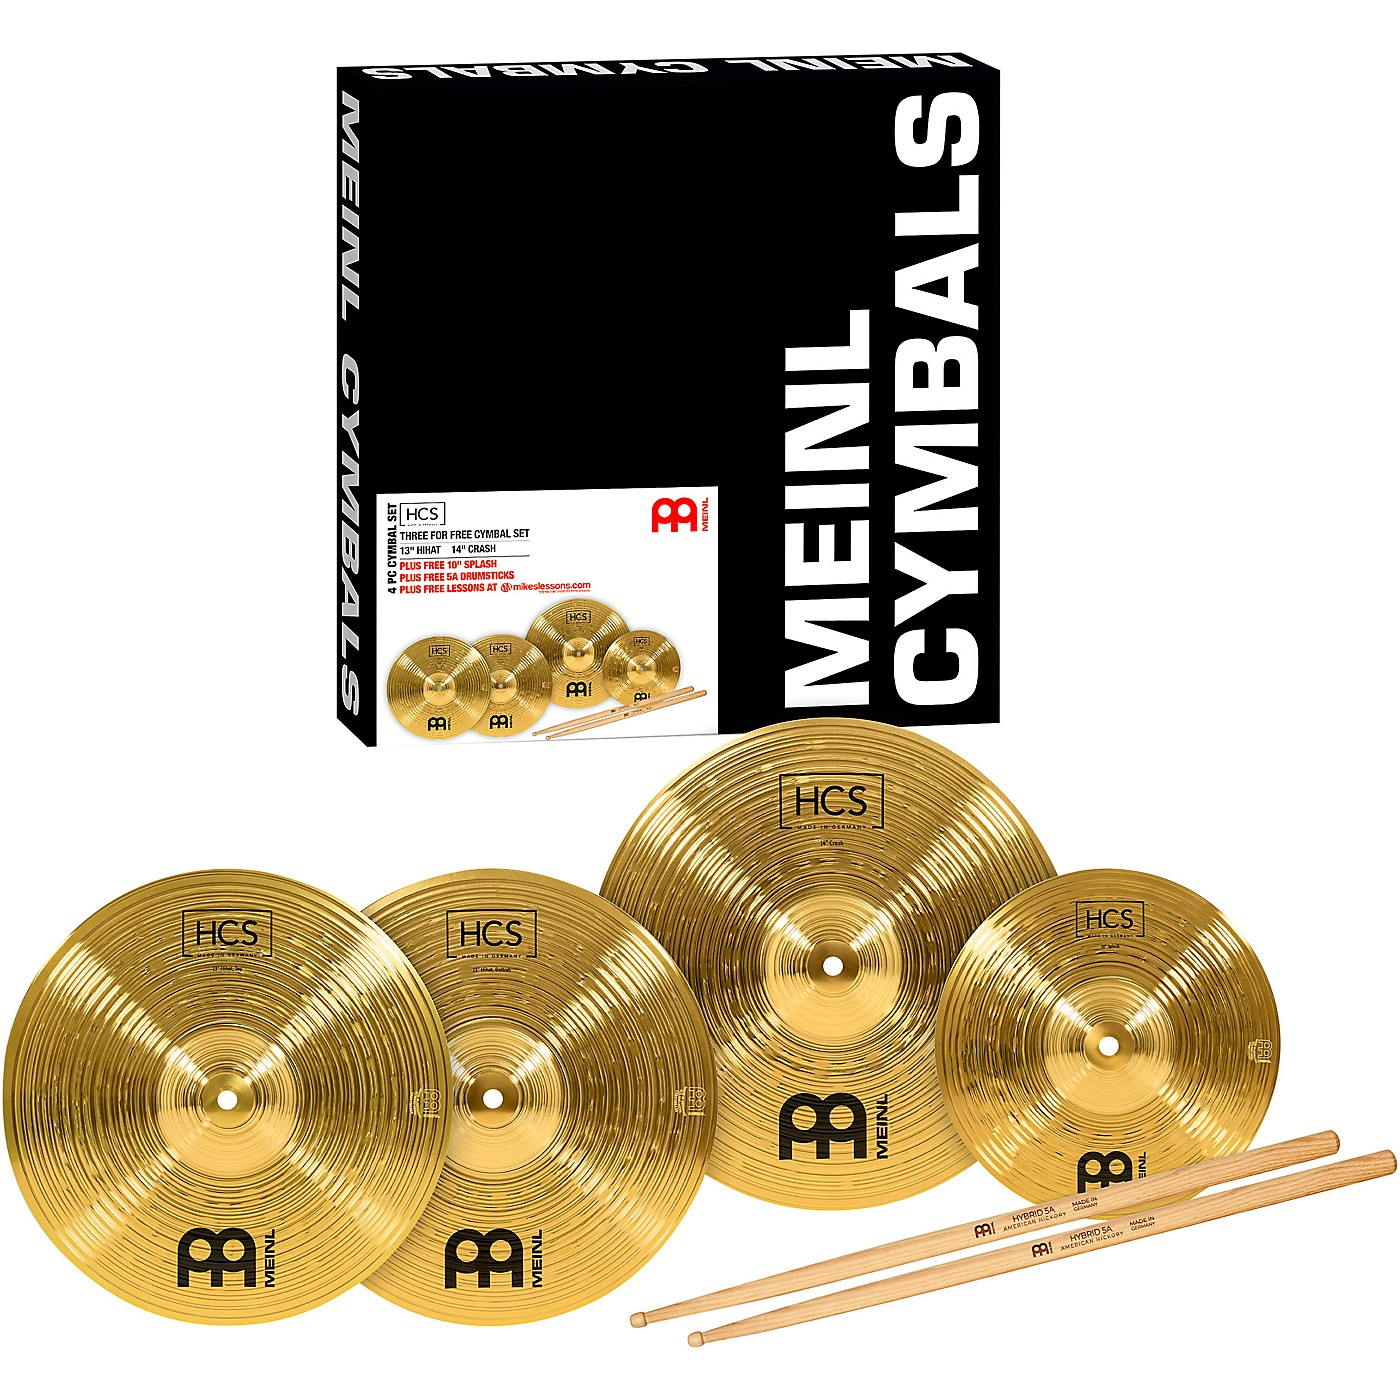 Meinl HCS Cymbal Pack with FREE Splash, Sticks, and Lessons thumbnail